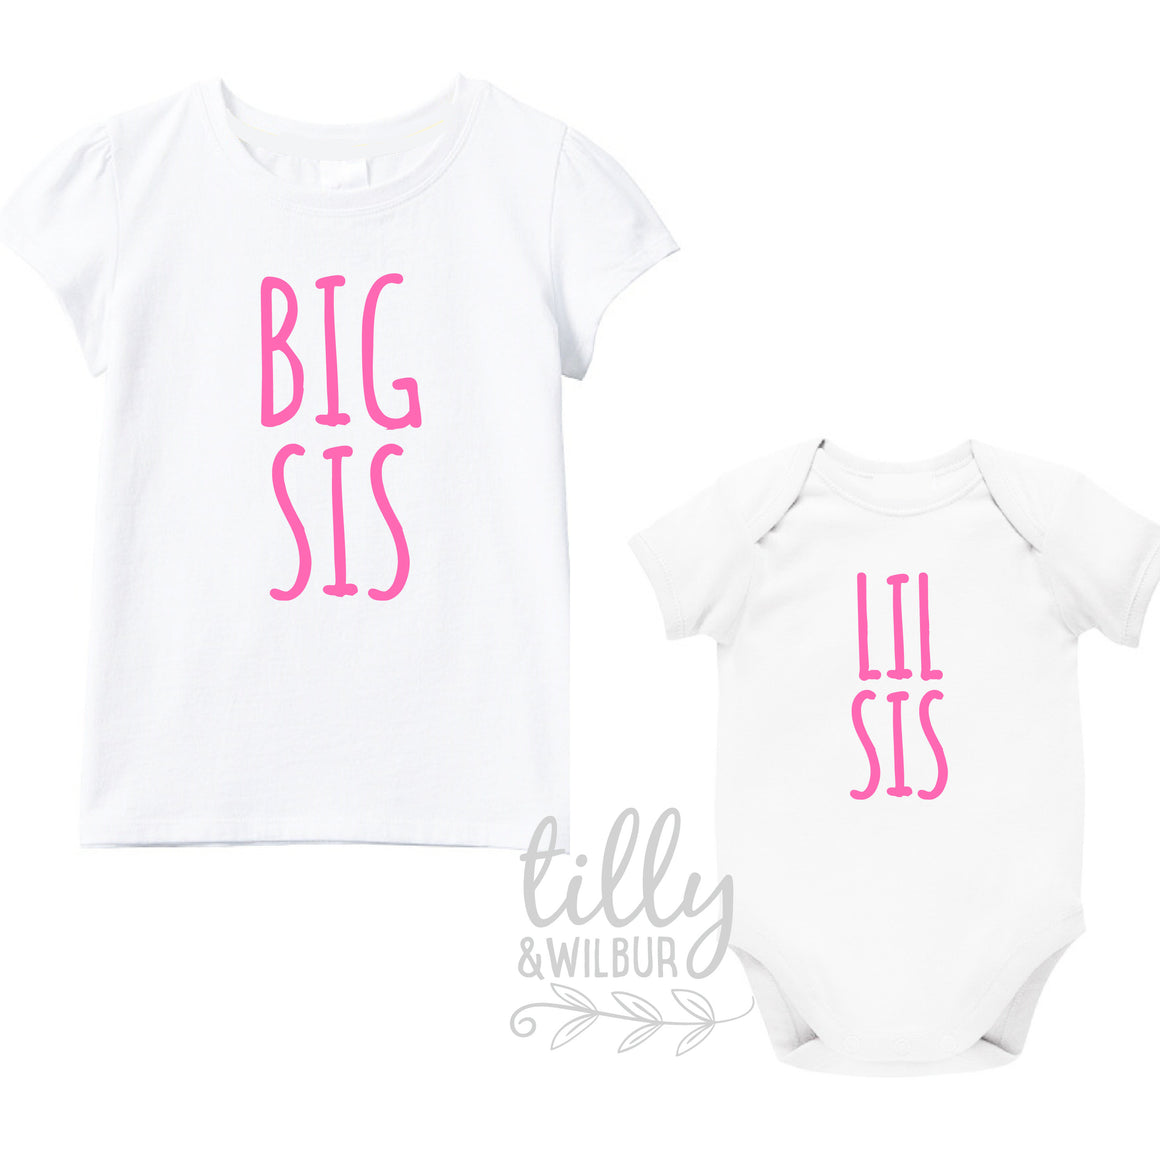 Big Sis Lil Sis Set, Sister Set, Sibling Set, Little Sister Big Sister, Pregnancy Announcement, Sister Gifts, Family Tees, Big Sister Shirt